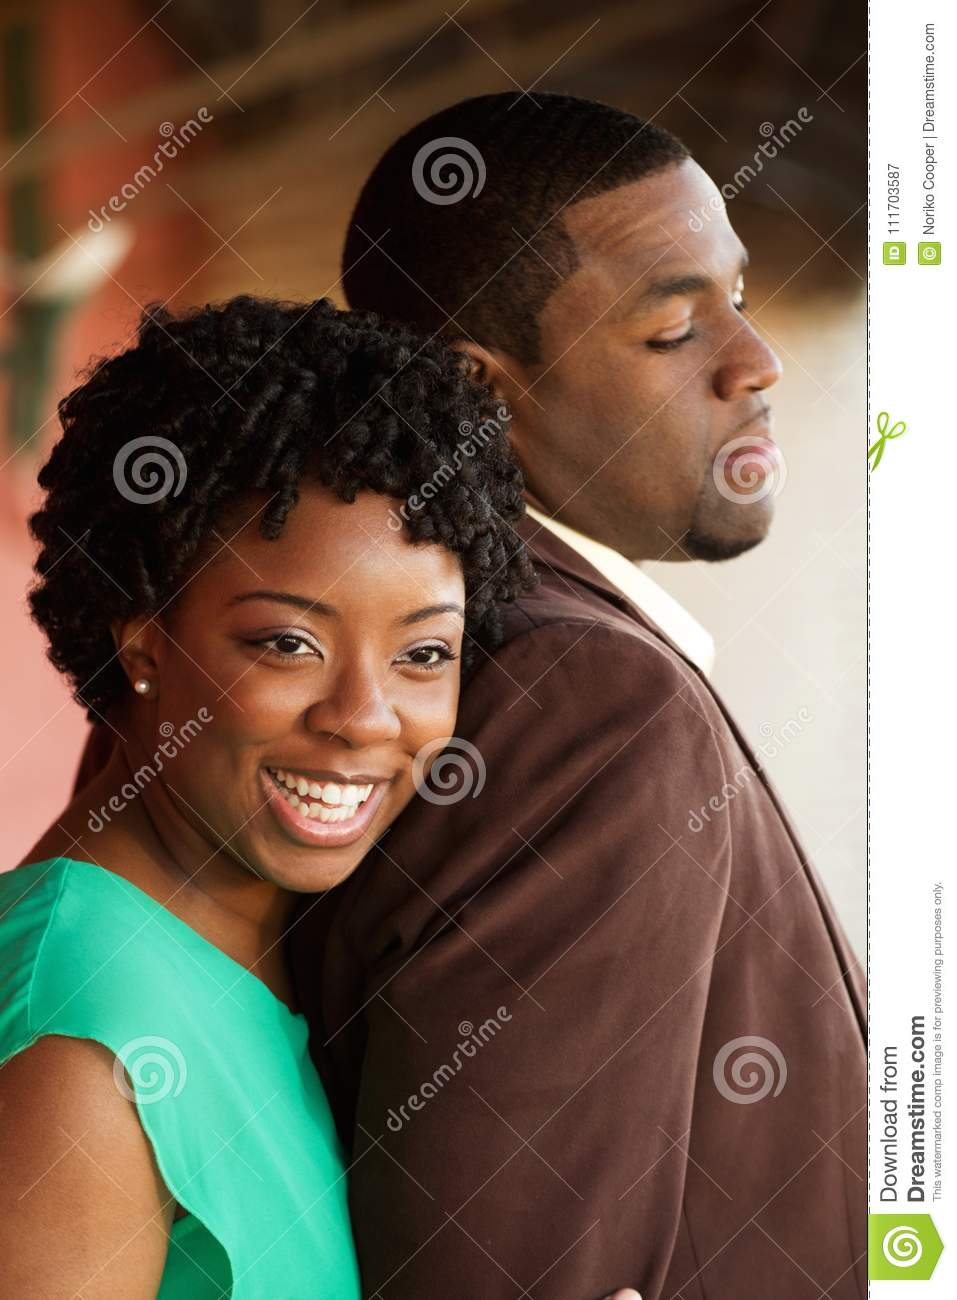 Download Portrait Of An African American Loving Couple. Stock Image - Image of cheerful, couple: 111703587